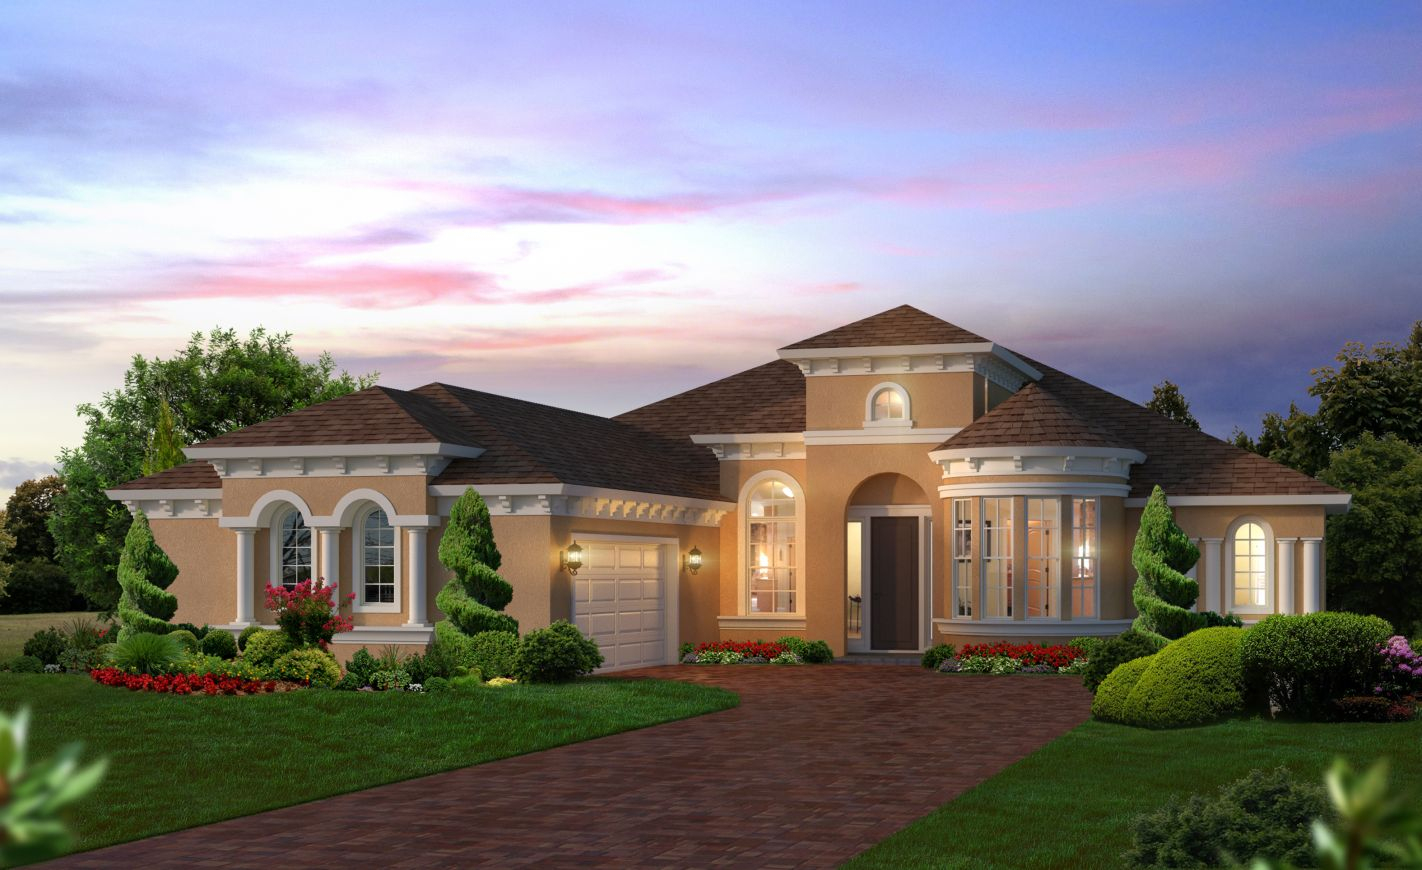 New Homes In Daytona Beach | Ici Homes - Map Of Homes For Sale In Florida